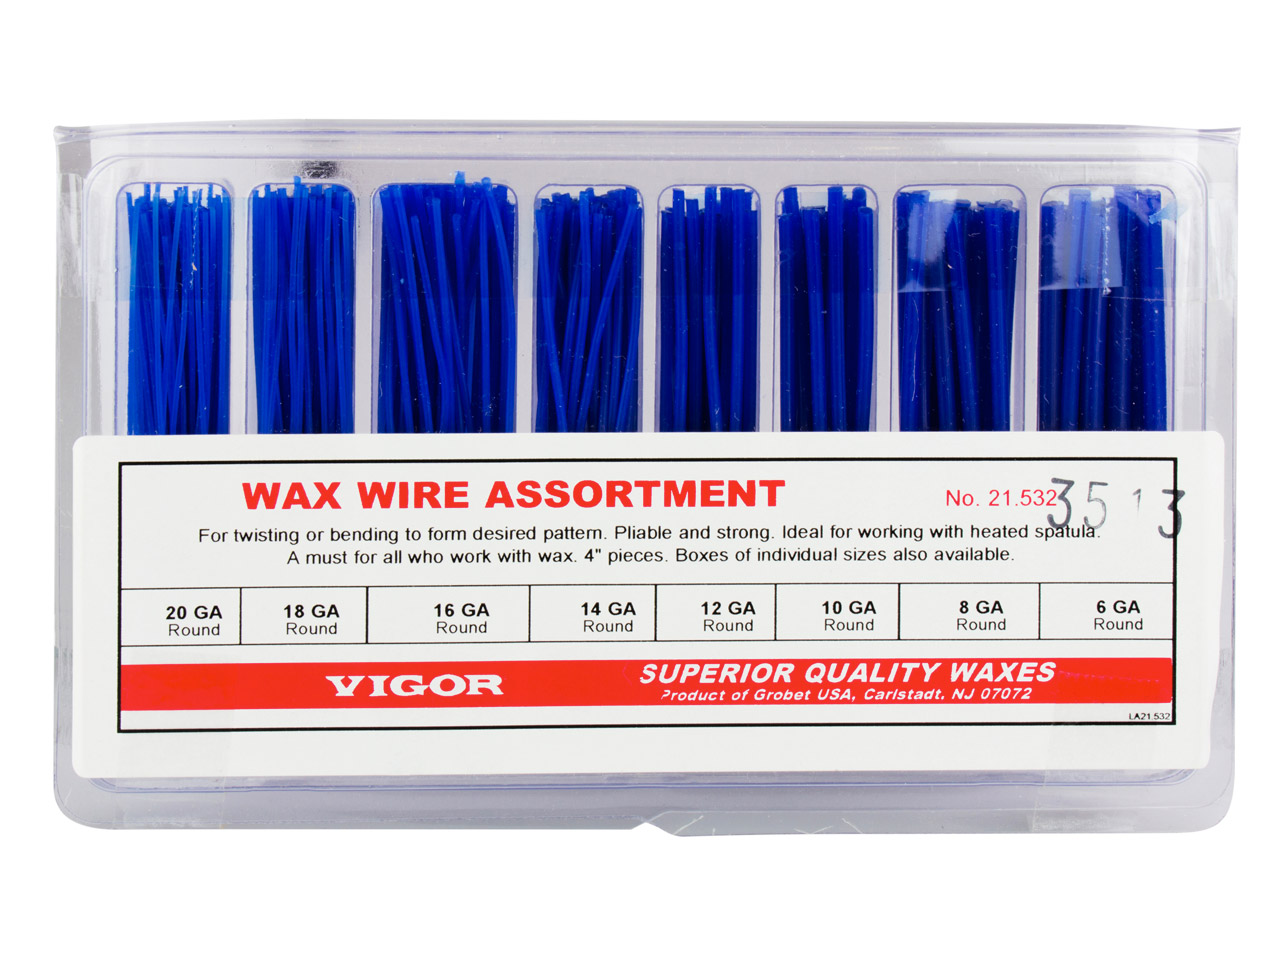 Ferris 'vigor' Wax Wire Assortment, Round